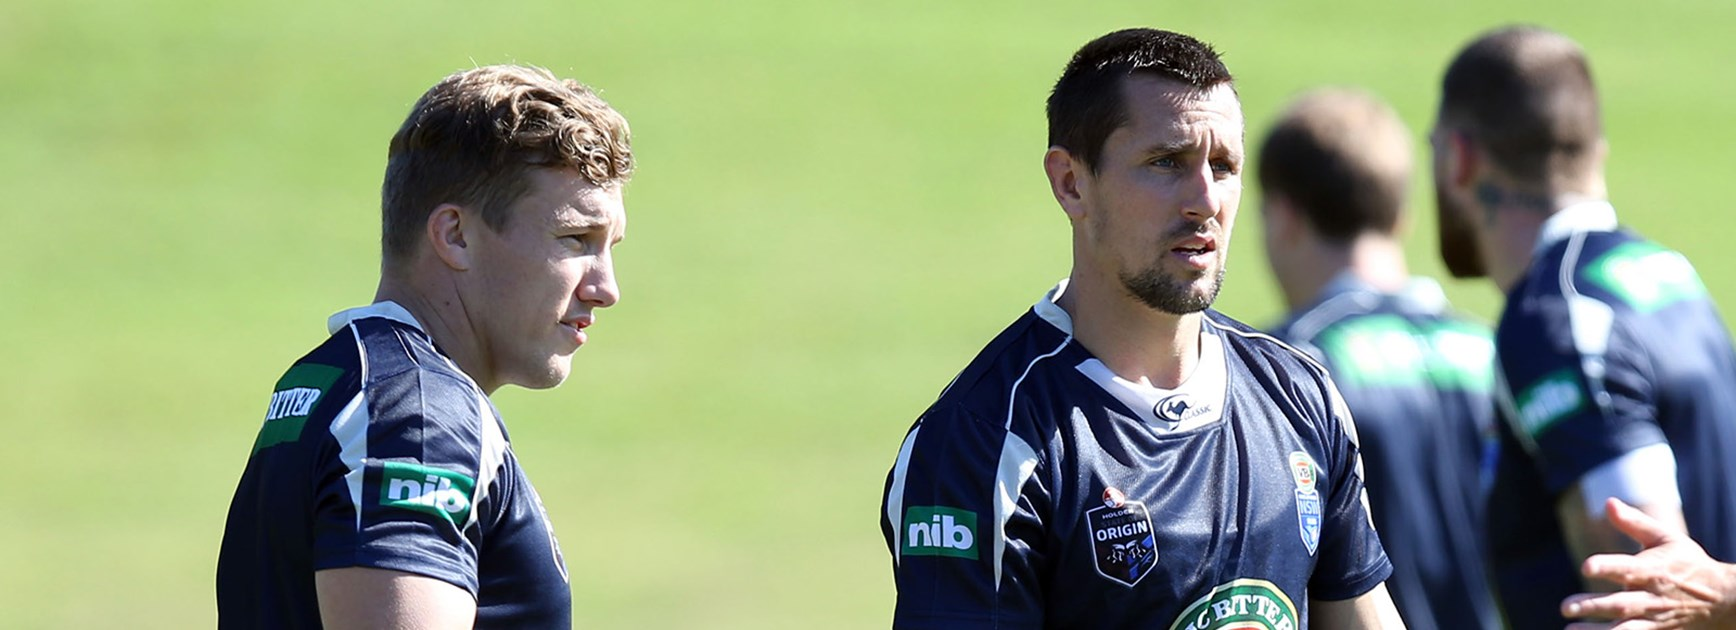 NSW Blues halves Trent Hodkinson and Mitchell Pearce plan their attack ahead of Holden State of Origin I.